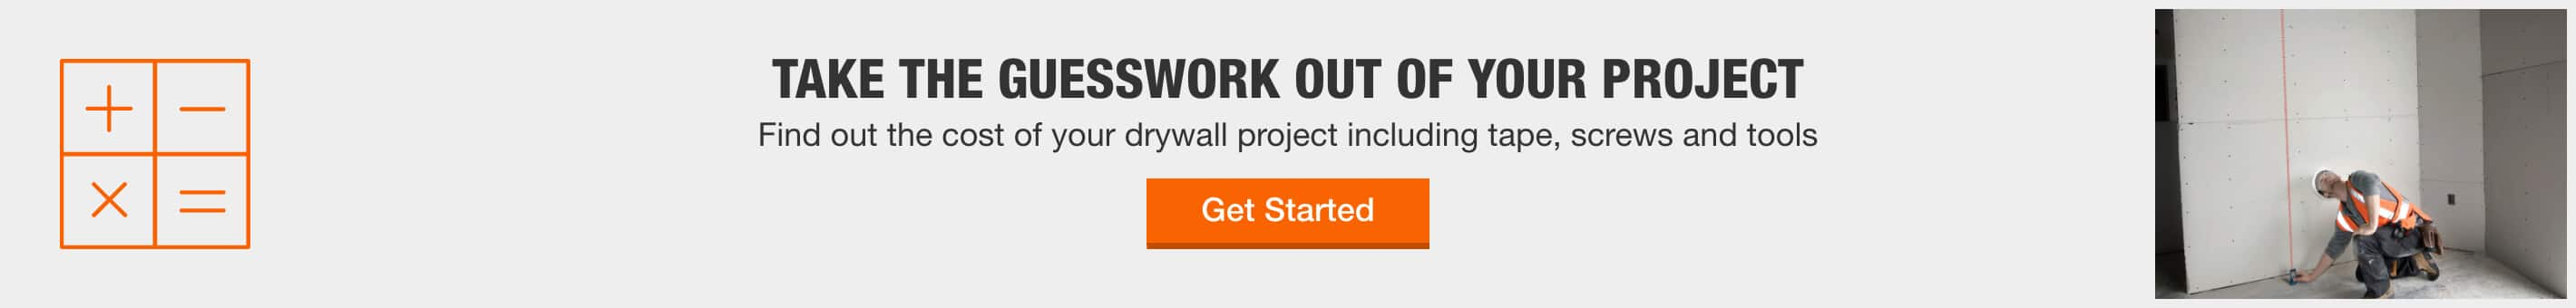 TAKE THE GUESSWORK OUT OF YOUR PROJECT - Find out the cost of your drywall project including tape, screws and tools > GET STARTED